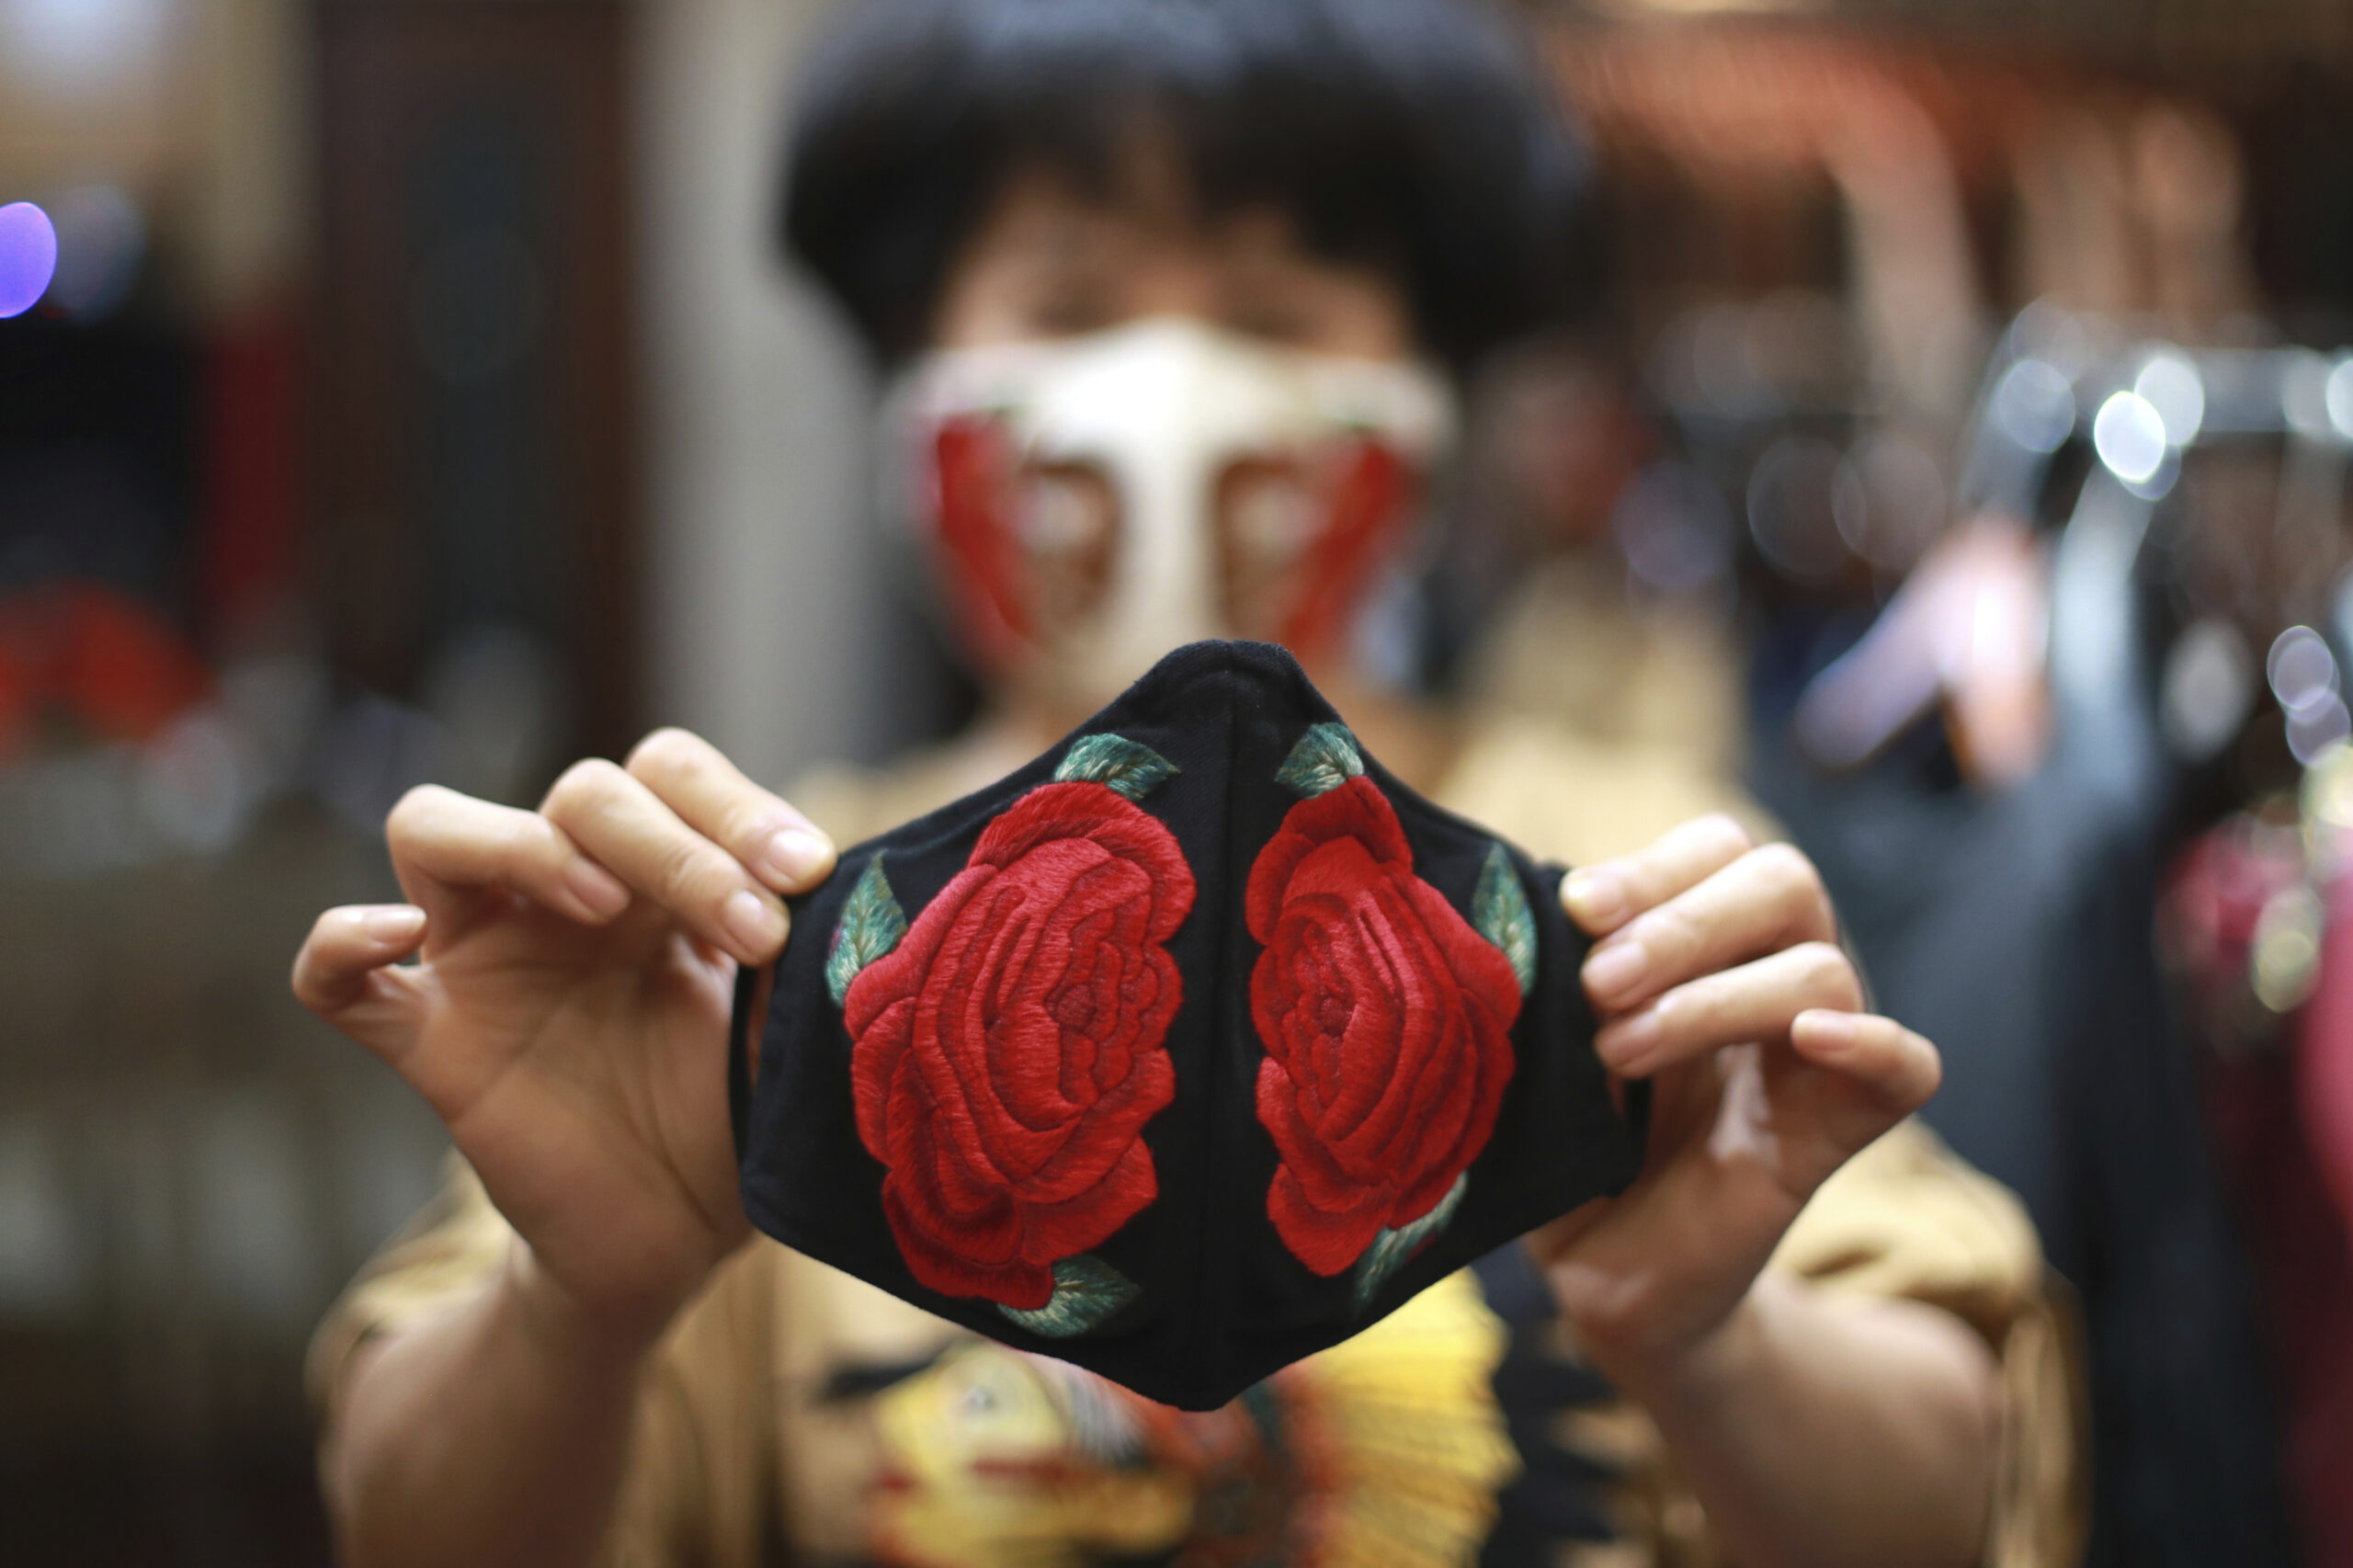 Indulge Your Inner Artist Enter Our Most Creative Mask Contest Dominion Post